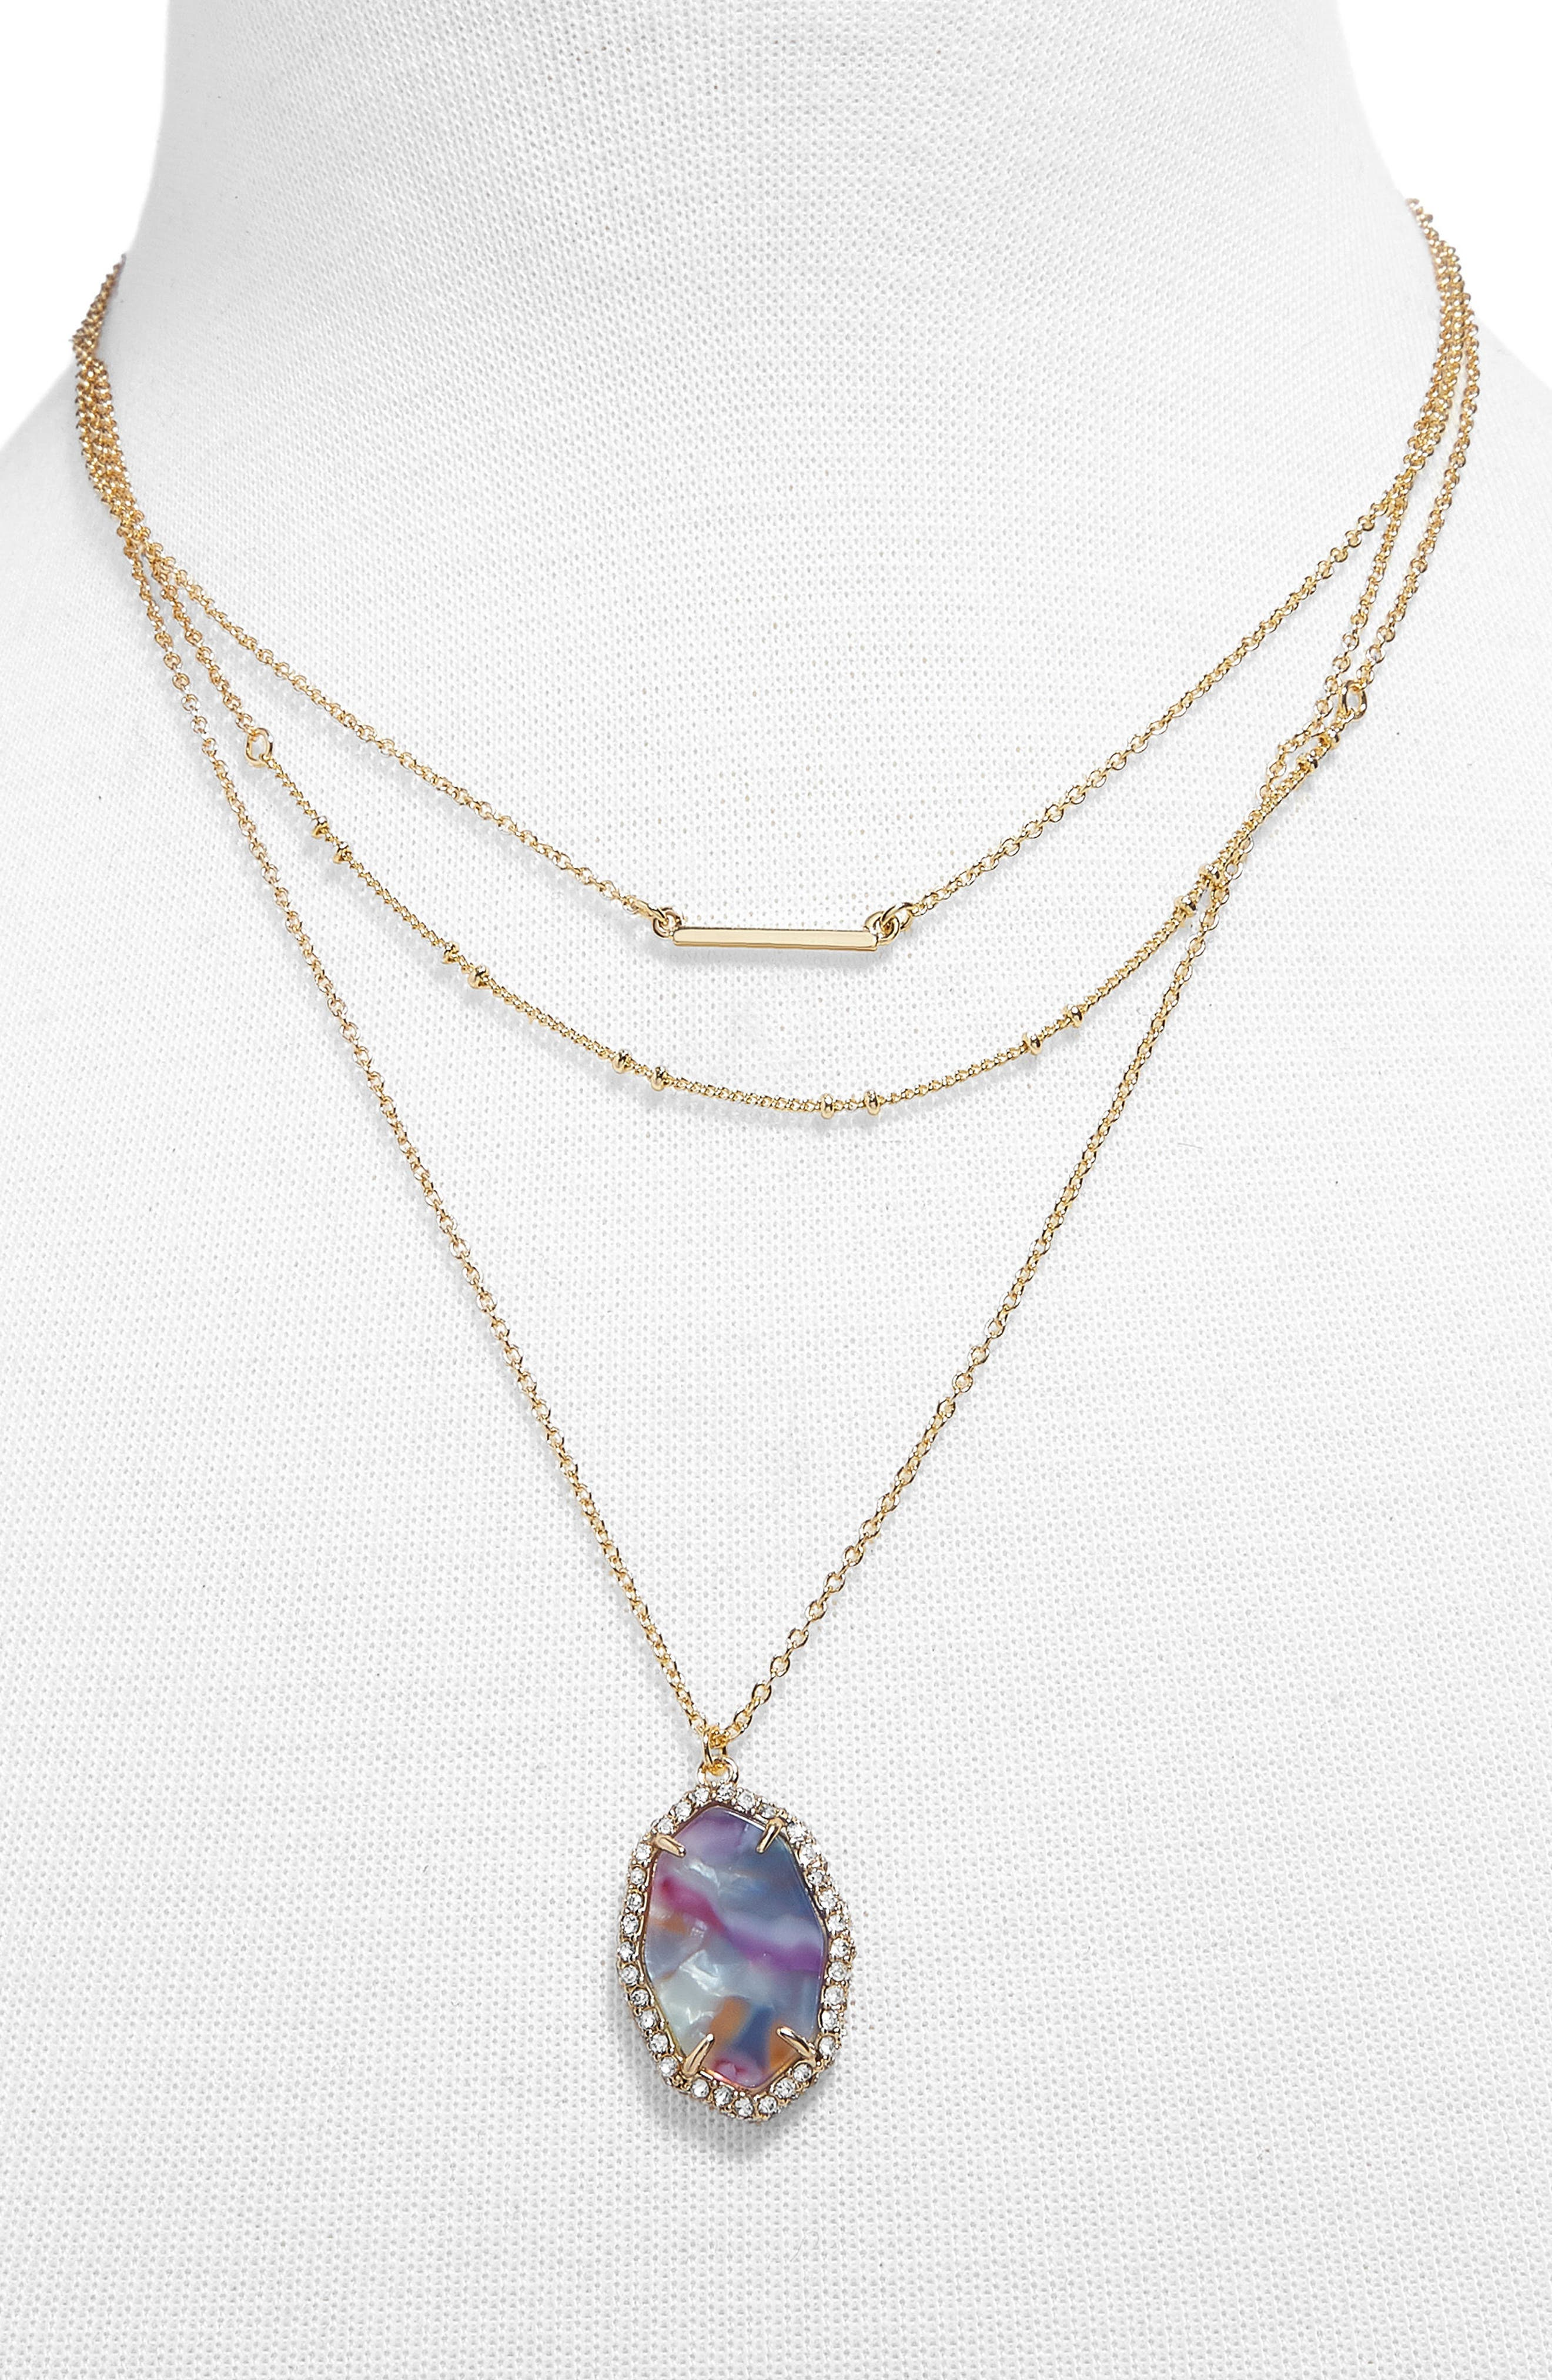 Ellory Layered Pendant Necklace,                             Main thumbnail 1, color,                             Purple